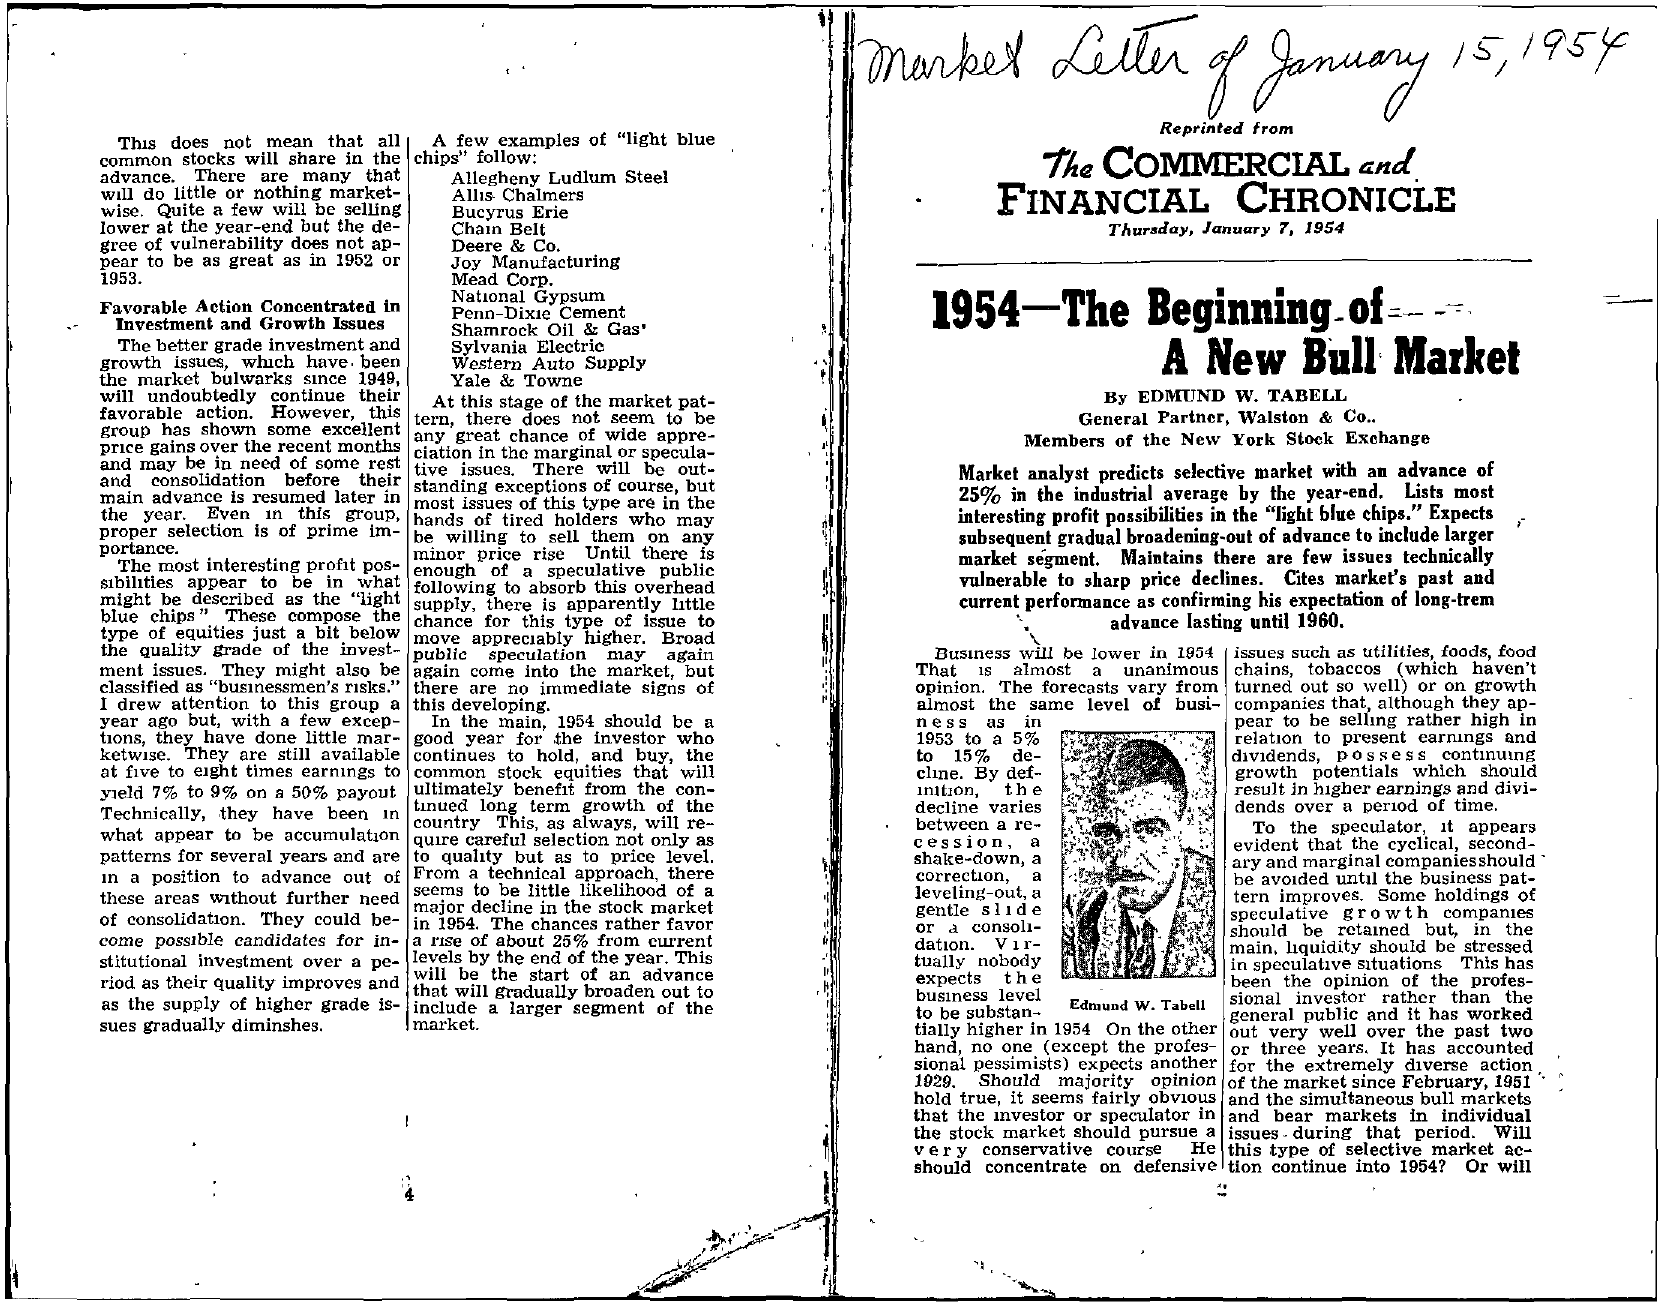 Tabell's Market Letter - January 15, 1954 page 1